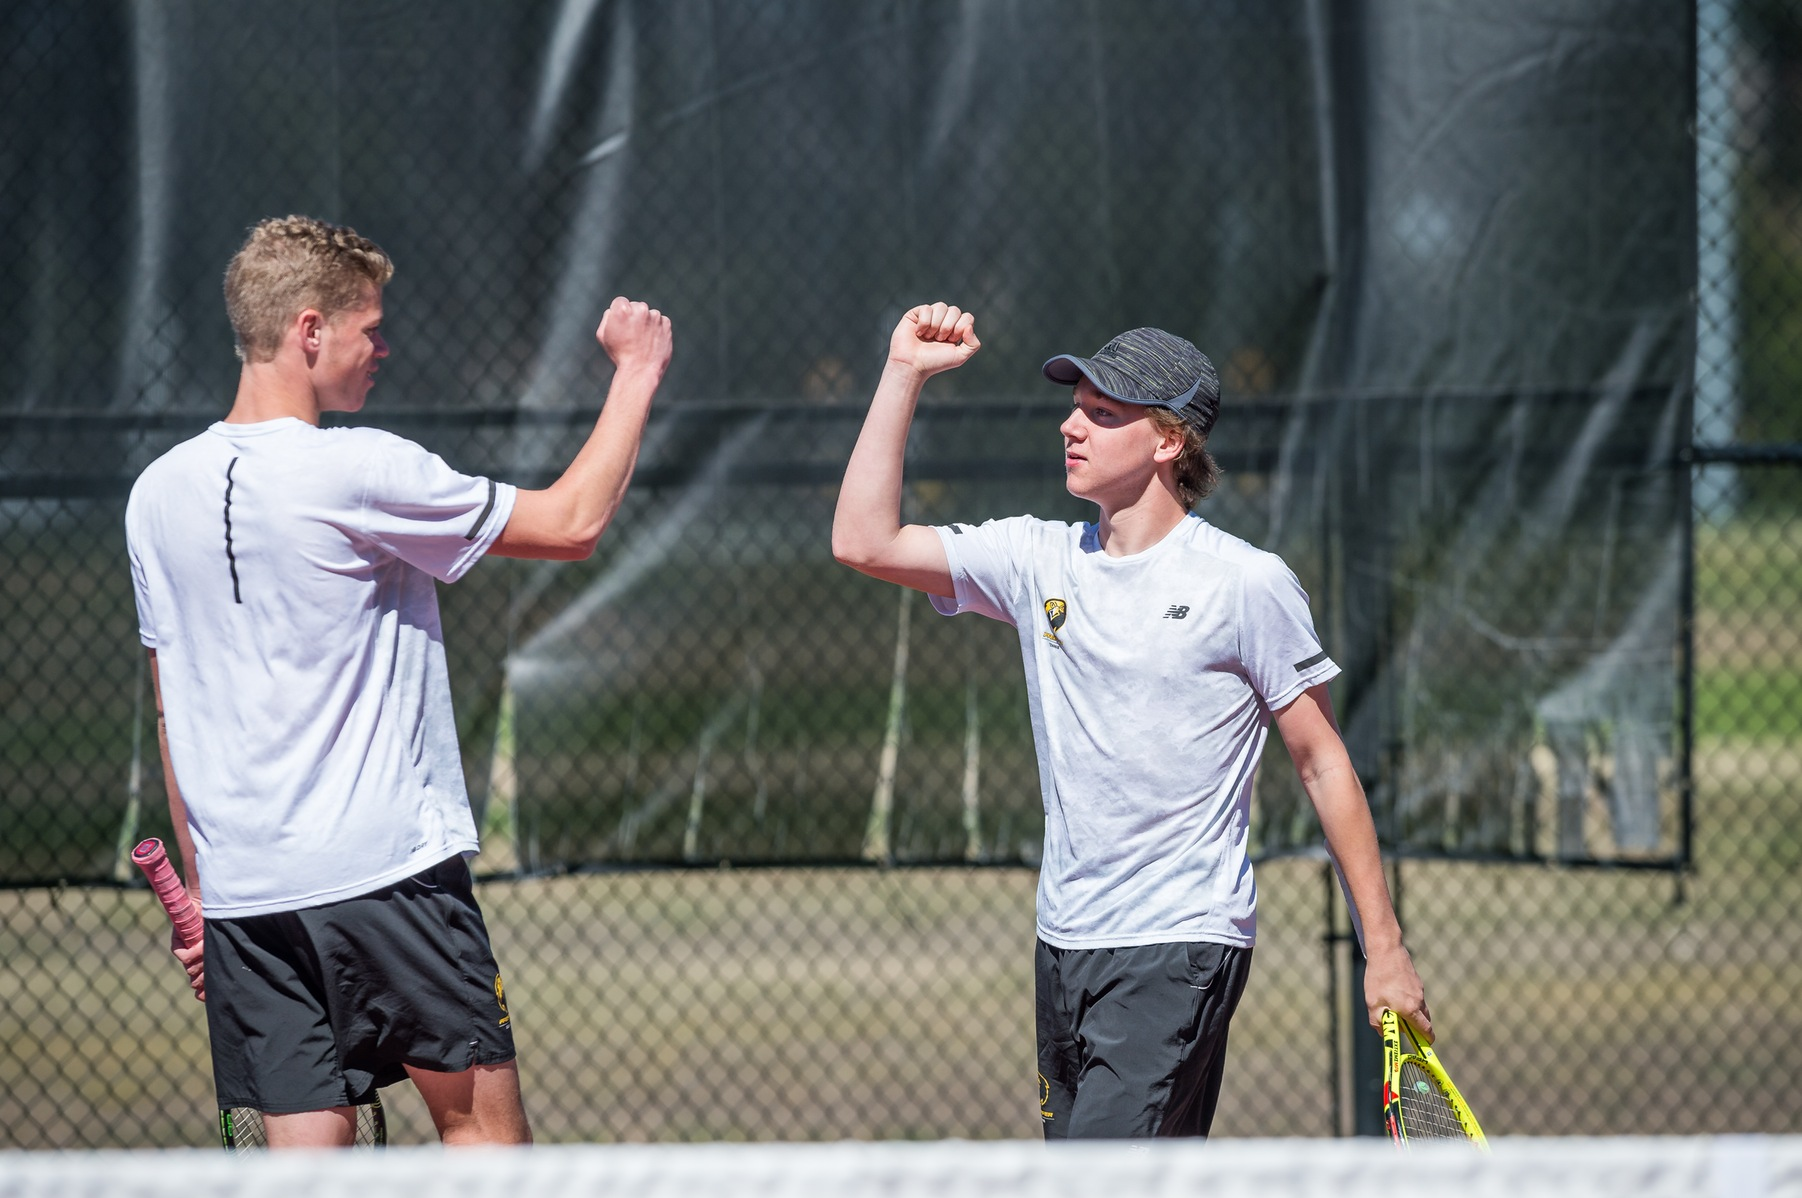 Men's Tennis Earns No. 1 Seed in ECAC Tournament; Play FDU-Florham on Saturday